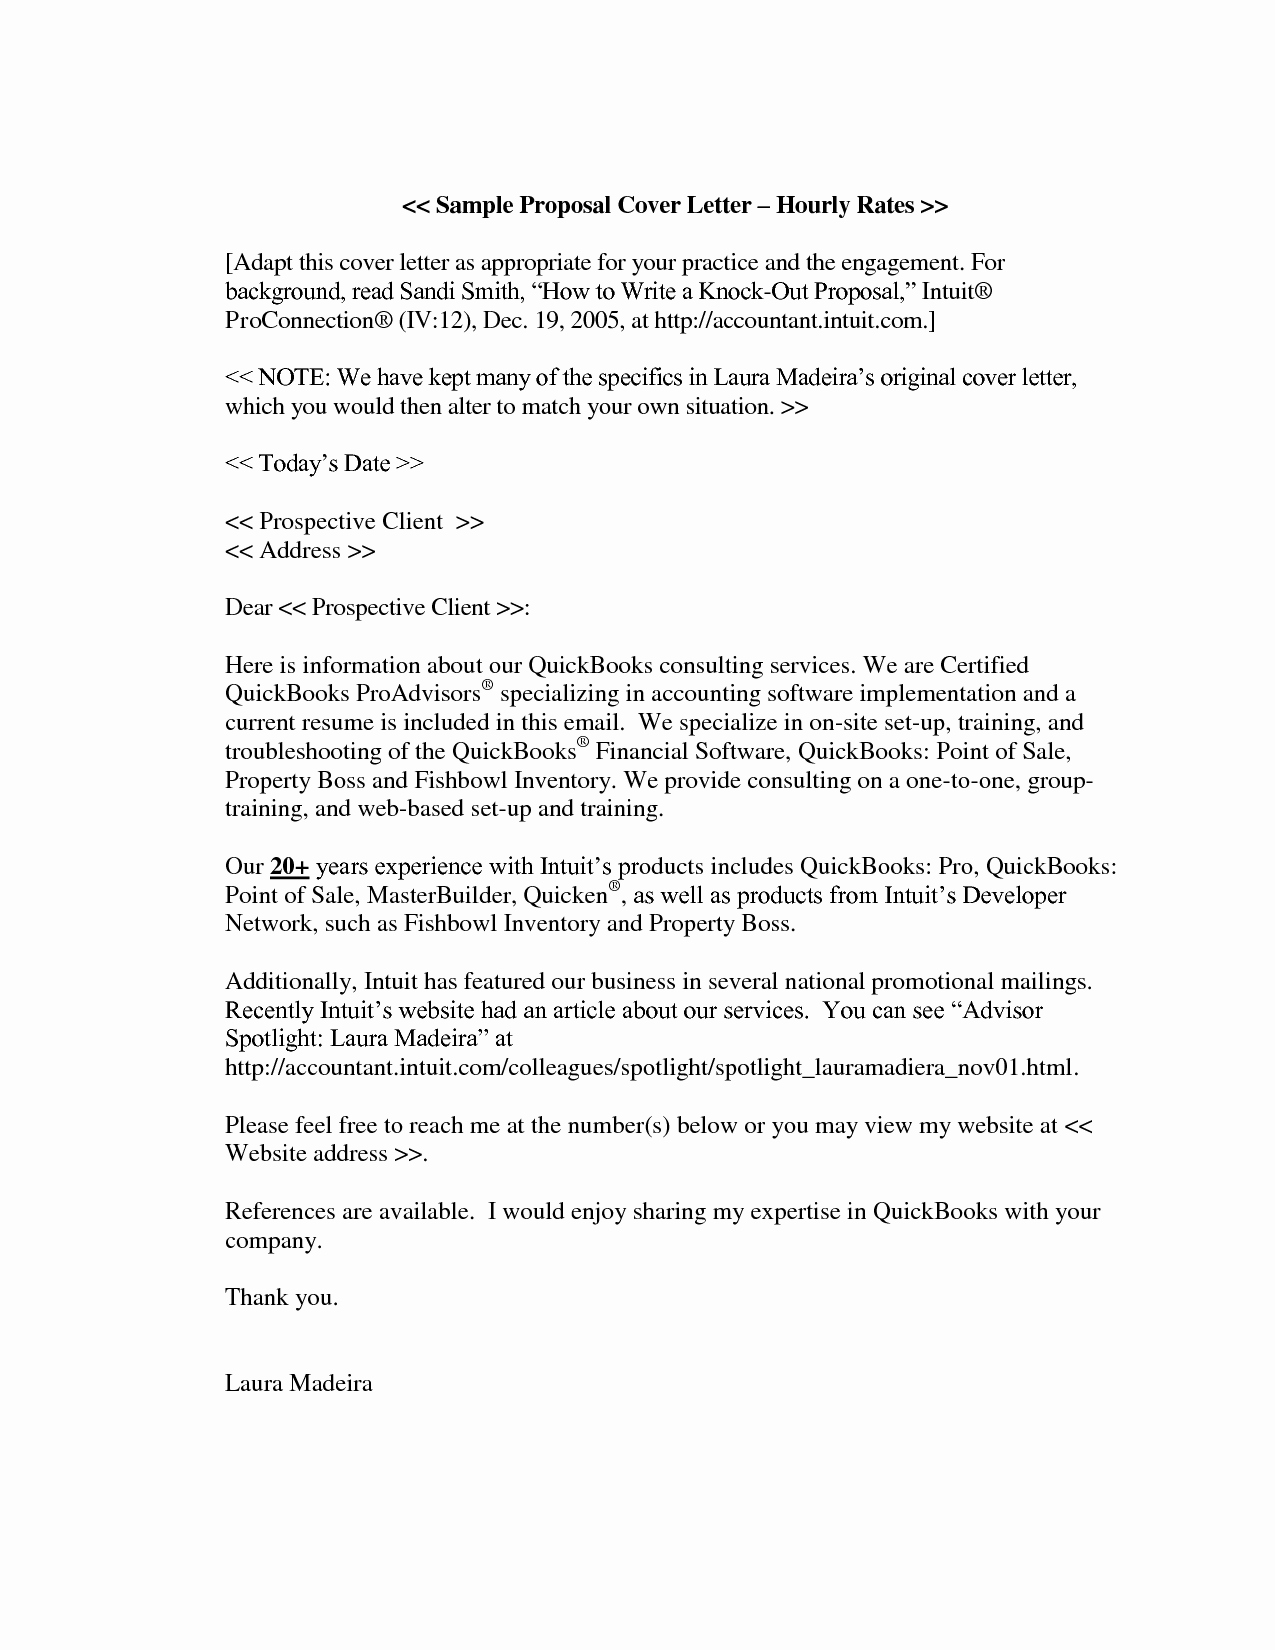 Cover Letter for Proposal Lovely Best Personal Essays From Around the Web Za Smith